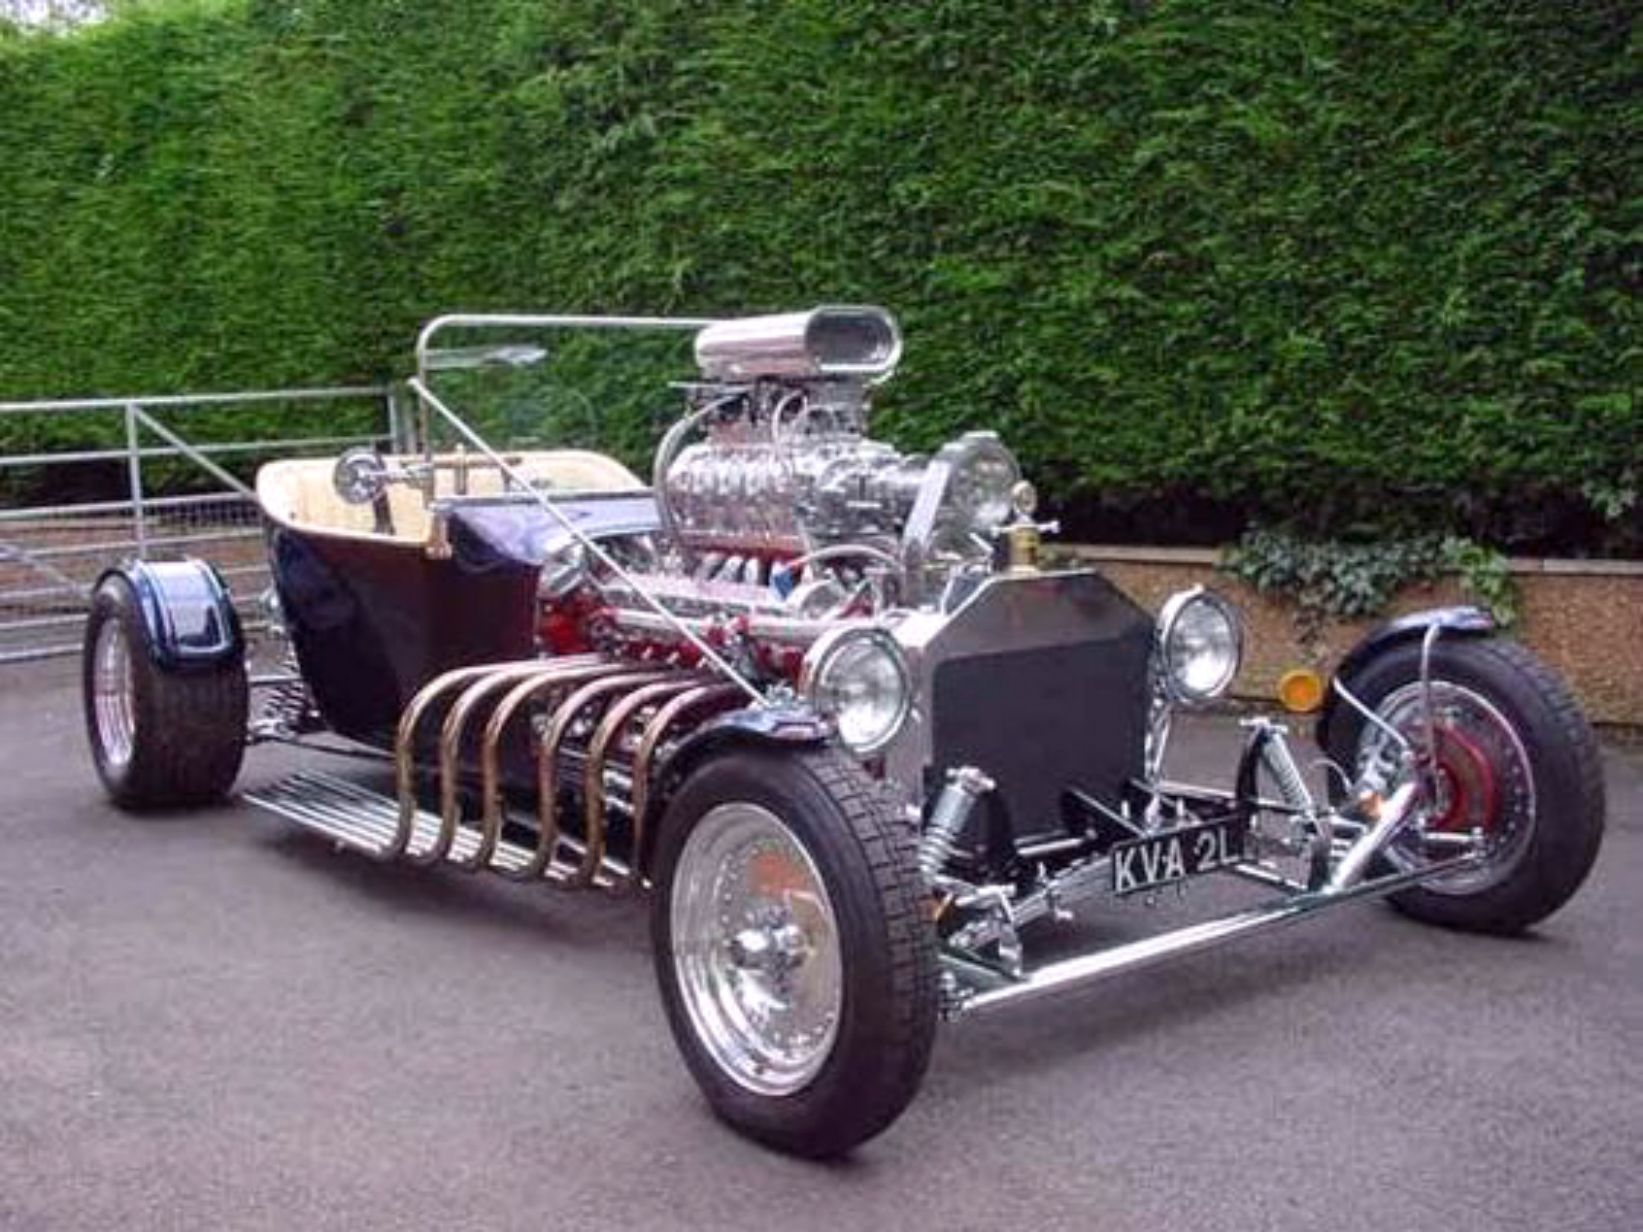 Ford T Bucket With Jaguar V12 Supercharged Engine Hot Rods Cars Muscle Hot Rods Hot Rods Cars